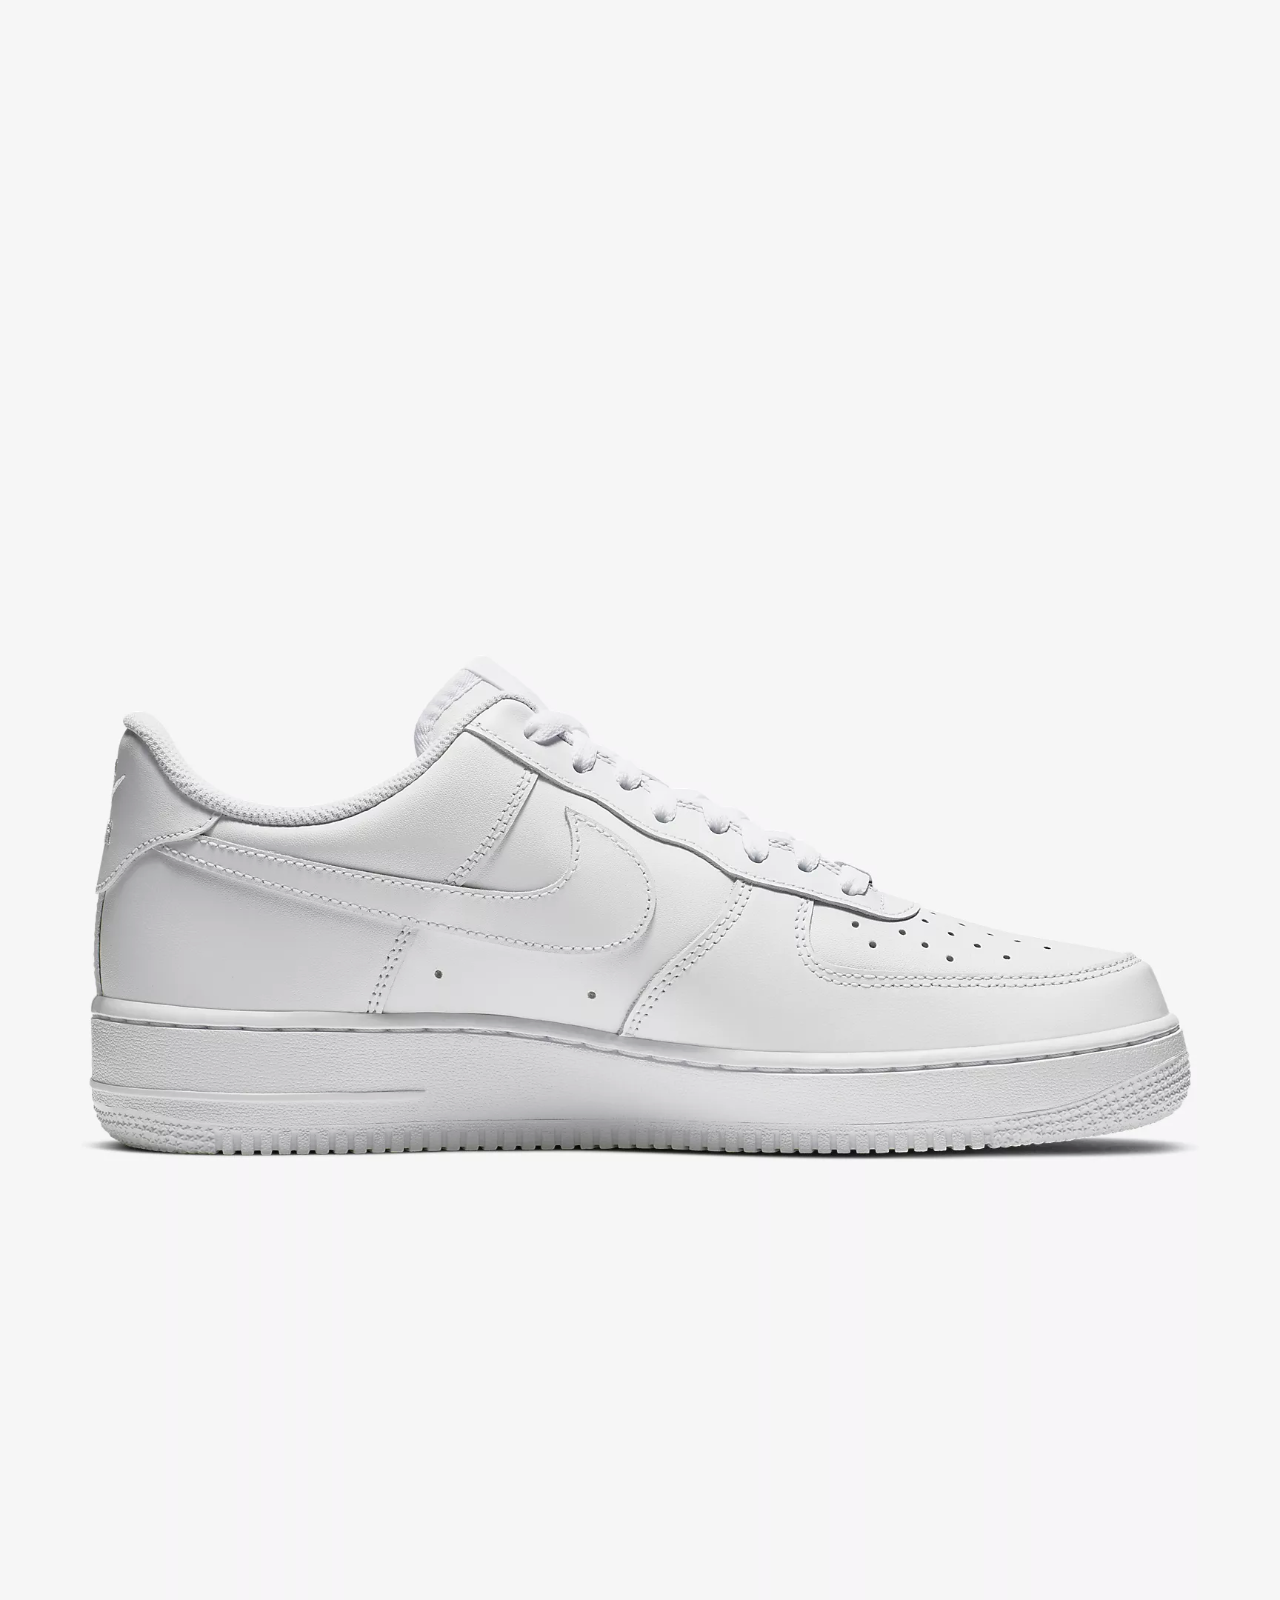 Nike Air Force 1 '07 Trainers White / Shoes / Leather Trainers image 2